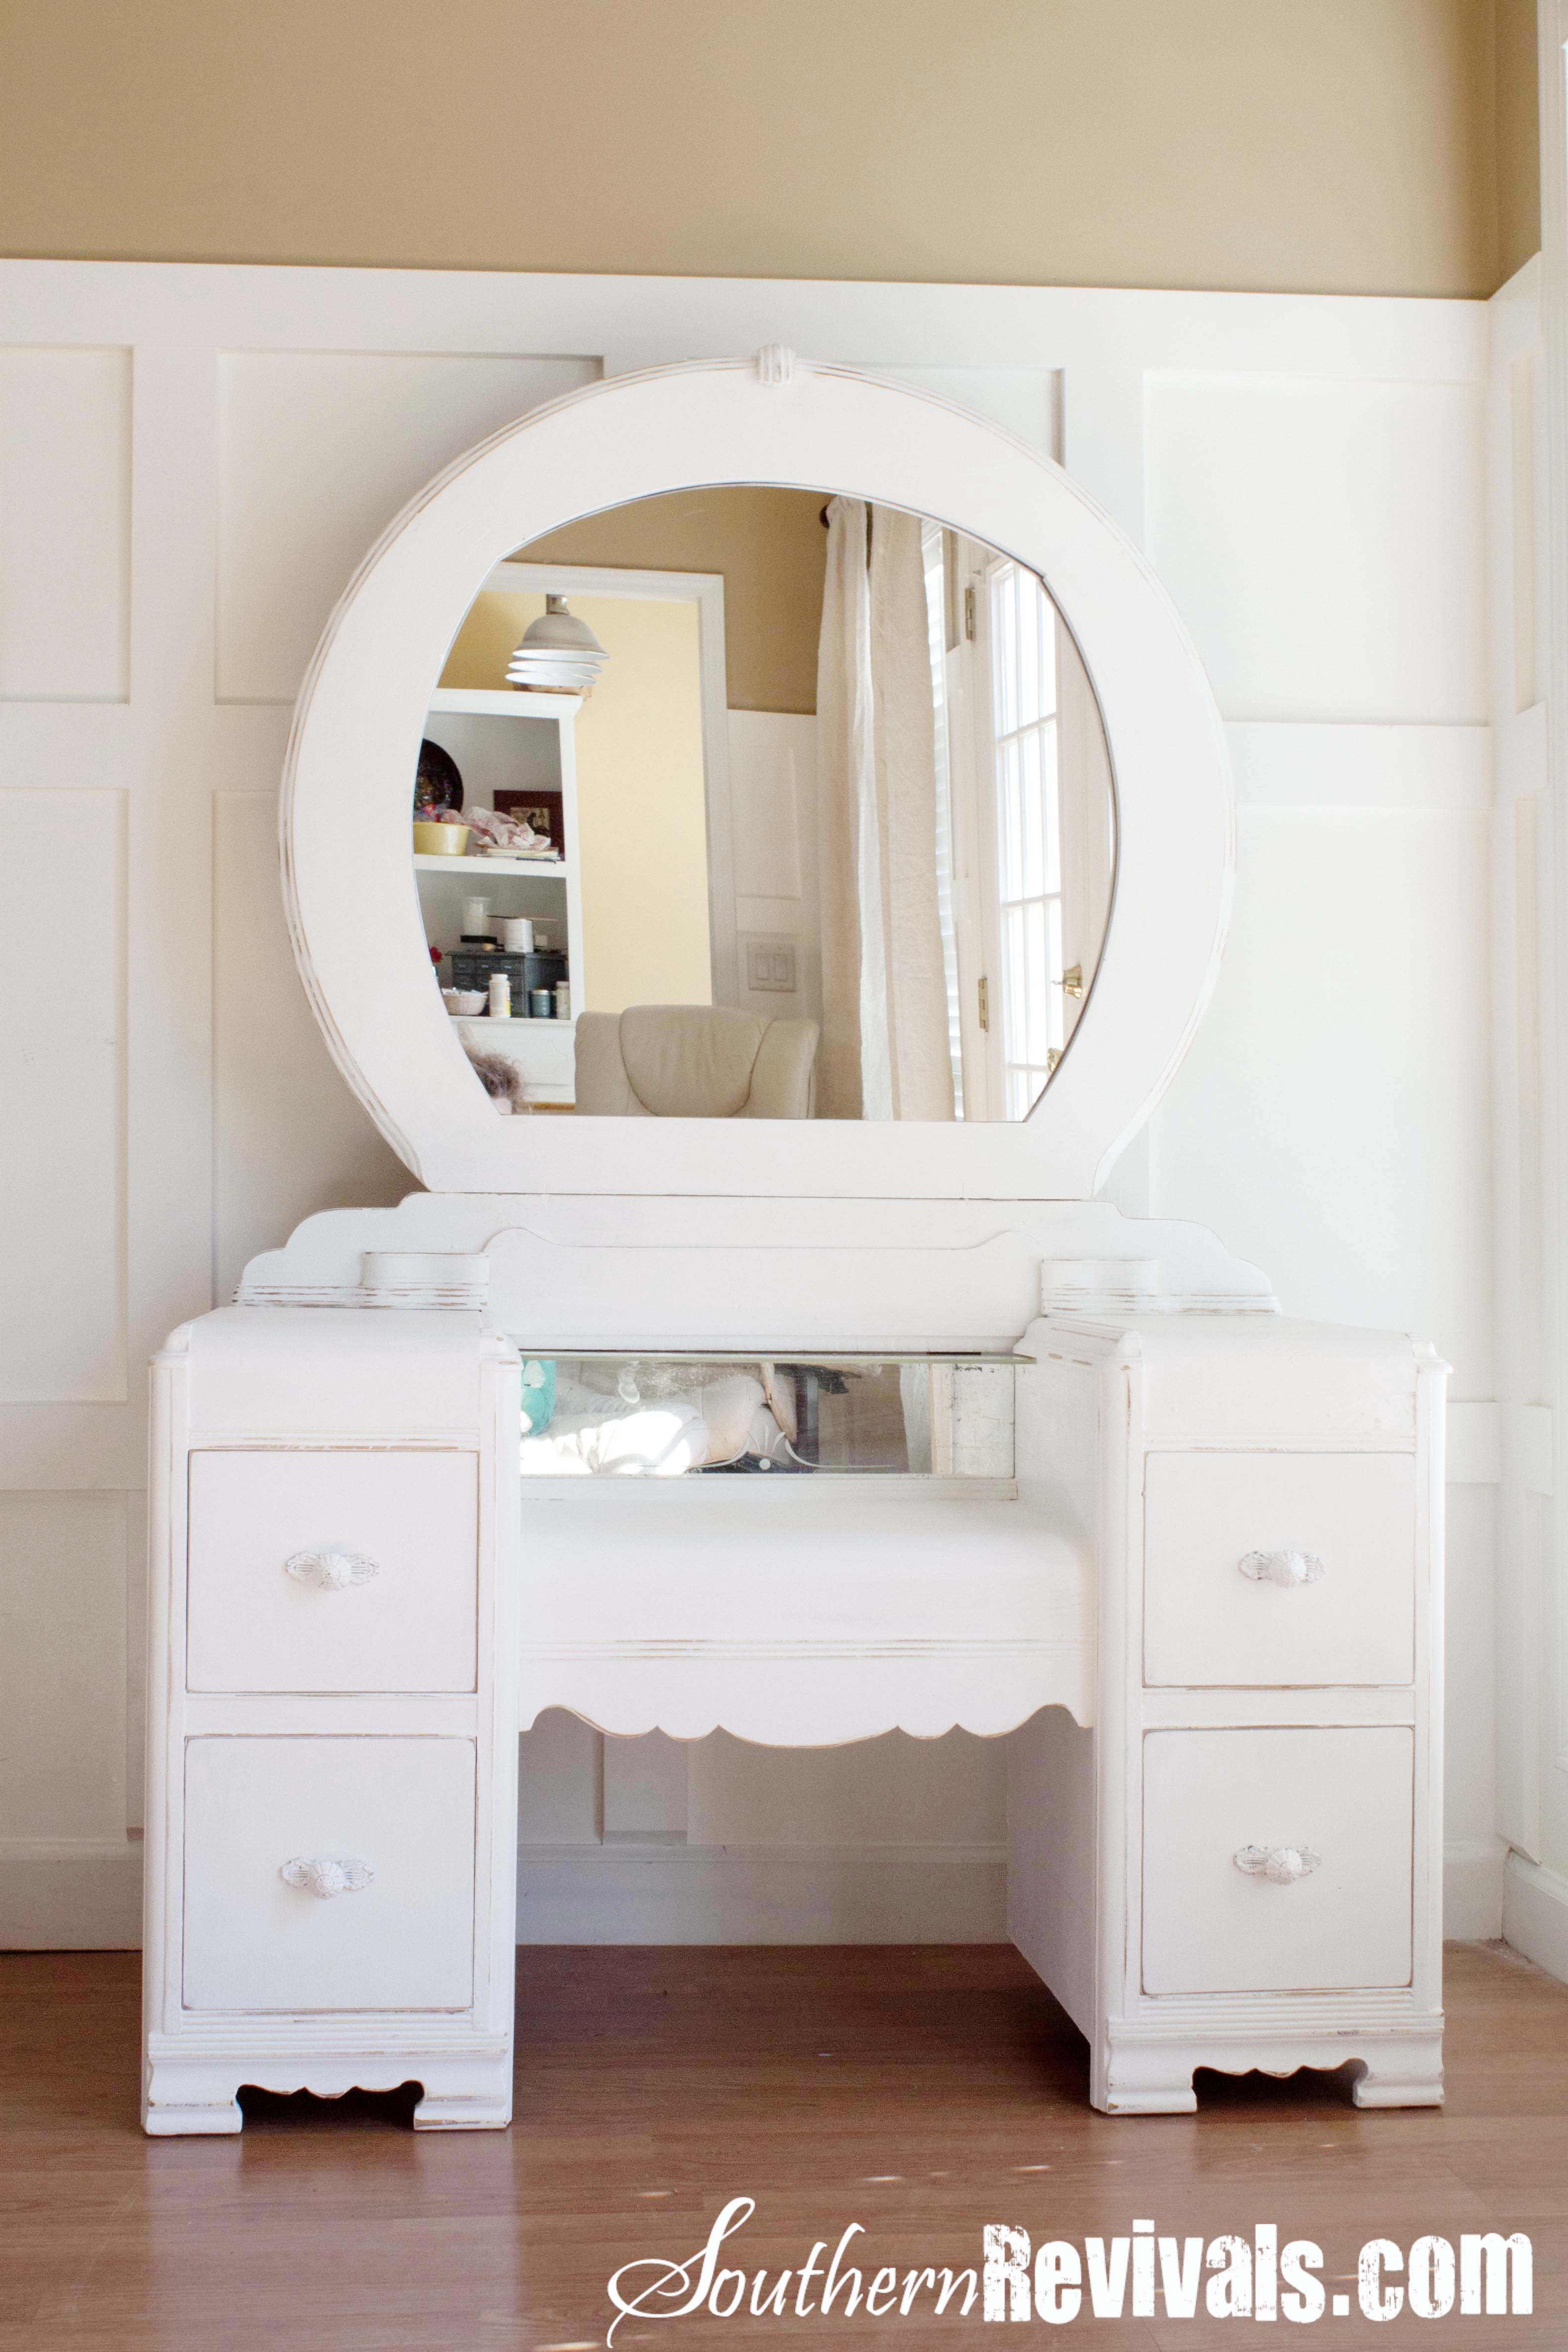 A 1940s Vanity Dresser Amp Mirror Revival Southern Revivals